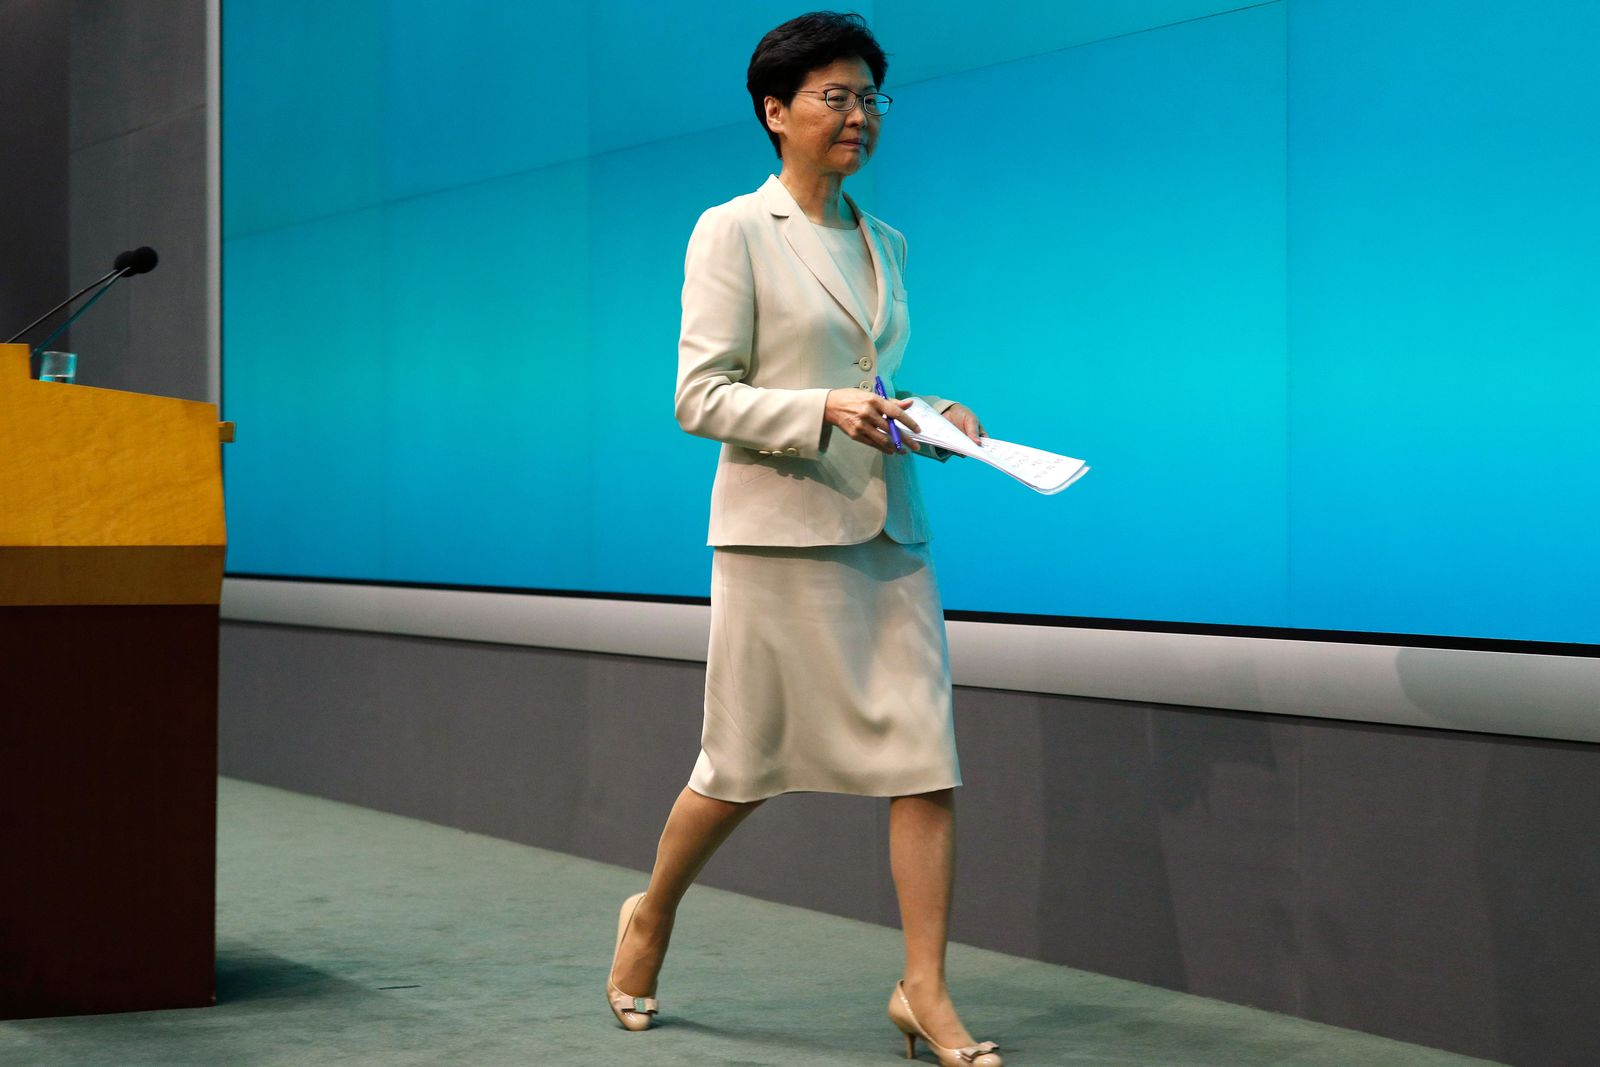 Hong Kong Chief Executive Carrie Lam leaves after a press conference at the Legislative Council in Hong Kong, Tuesday, June 18, 2019. Lam apologized Tuesday for an unpopular extradition bill that drew massive protests and indicated that it will not be revived during the current legislative session. (AP Photo/Vincent Yu)